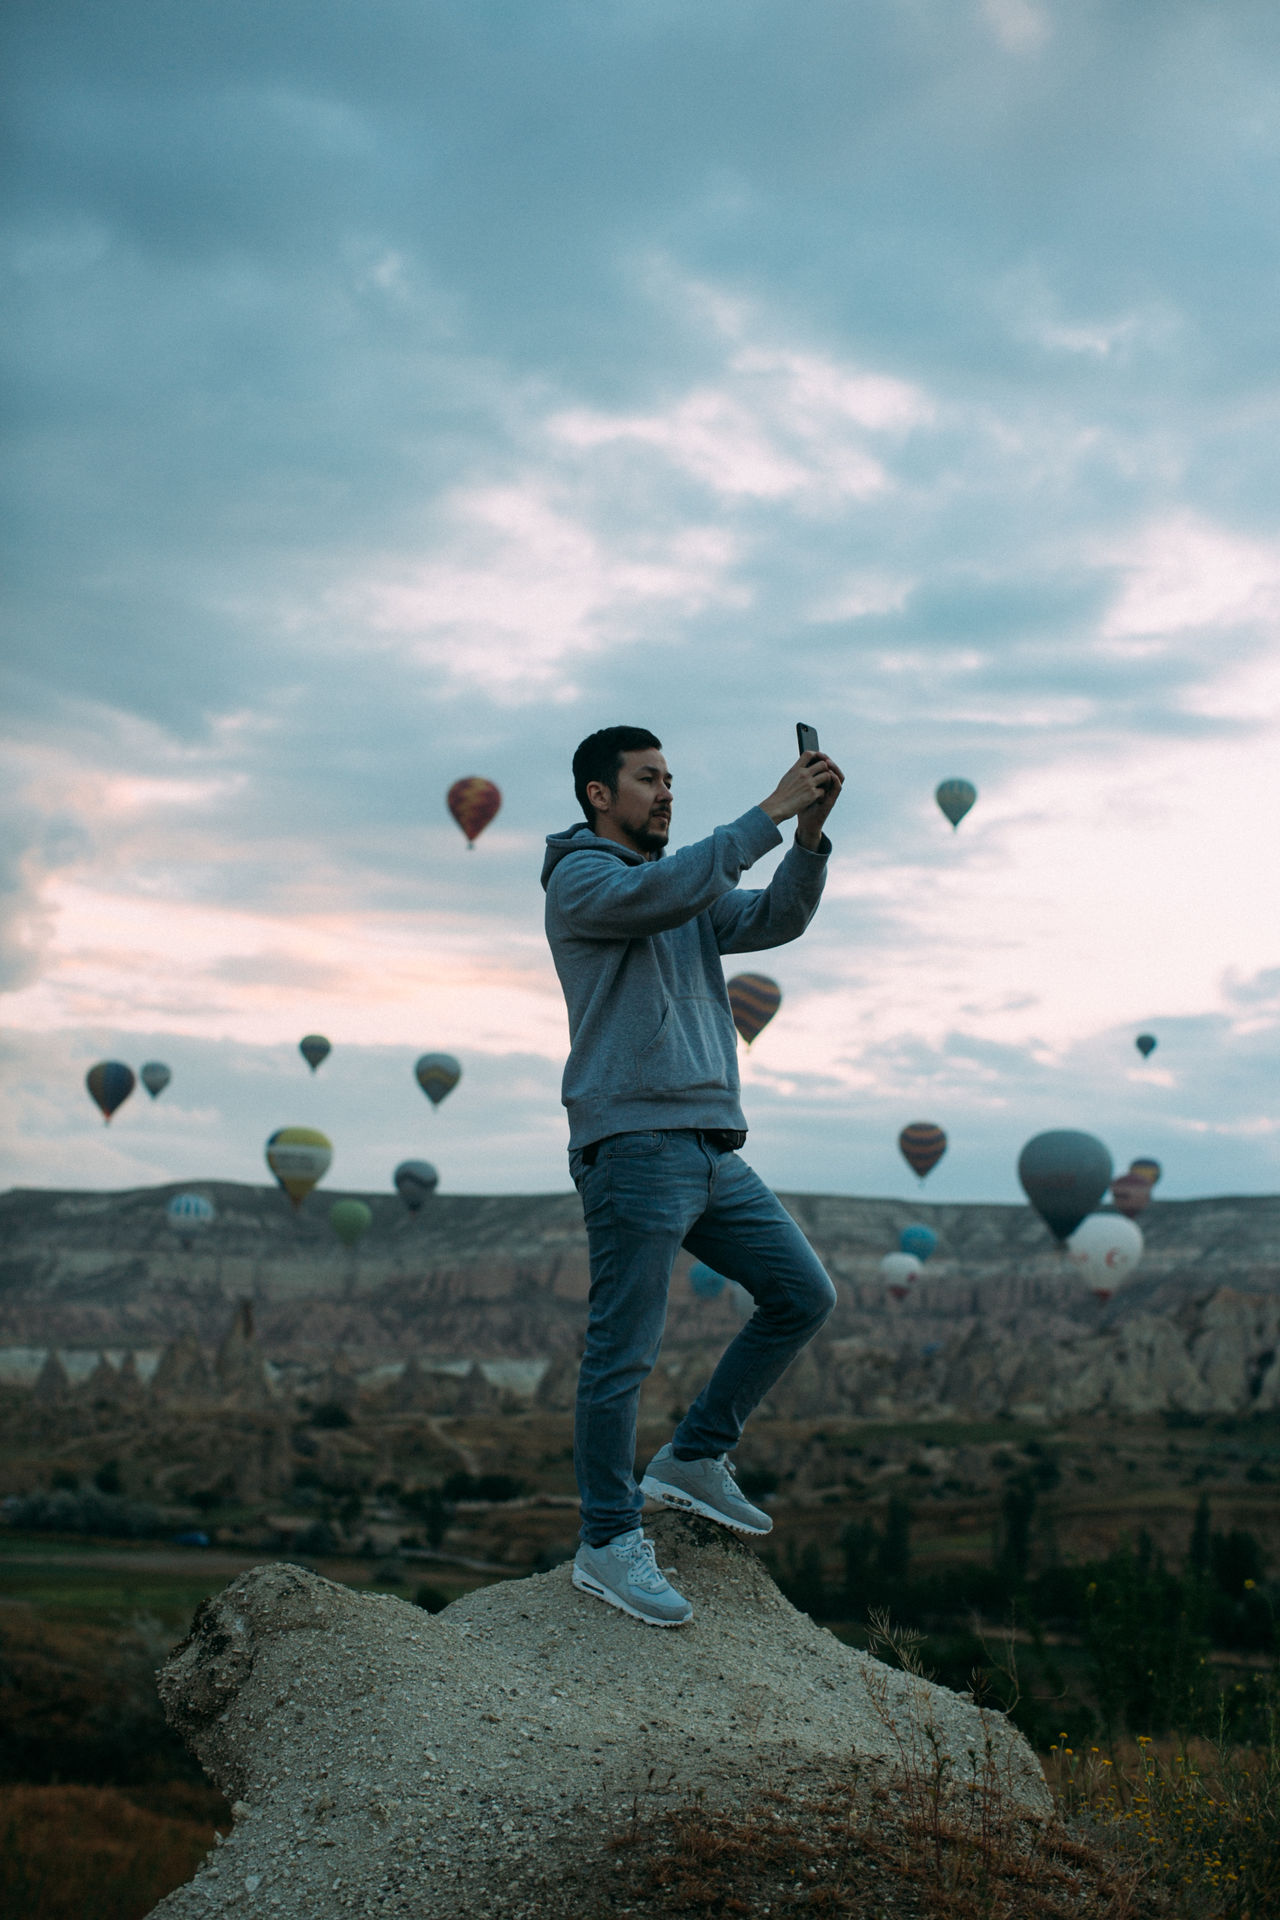 Full length of man photographing through mobile phone with hot air balloons in background during sunset